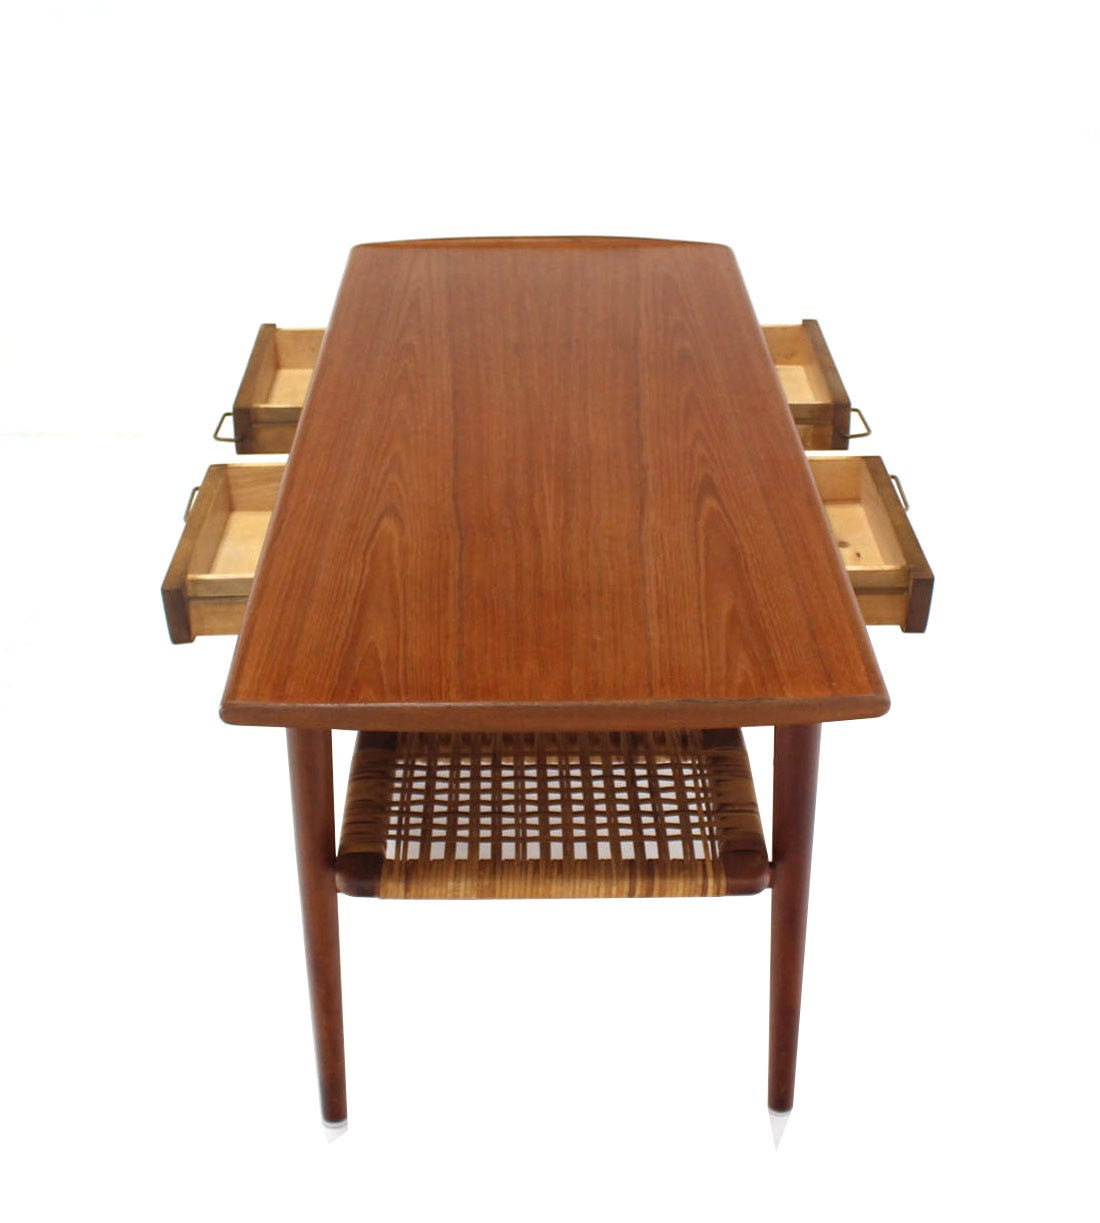 Mid Century Danish Modern Small Scale Drawer Coffee Table: Danish Modern Teak Coffee Table Cane Shelf Rolled Edges 4